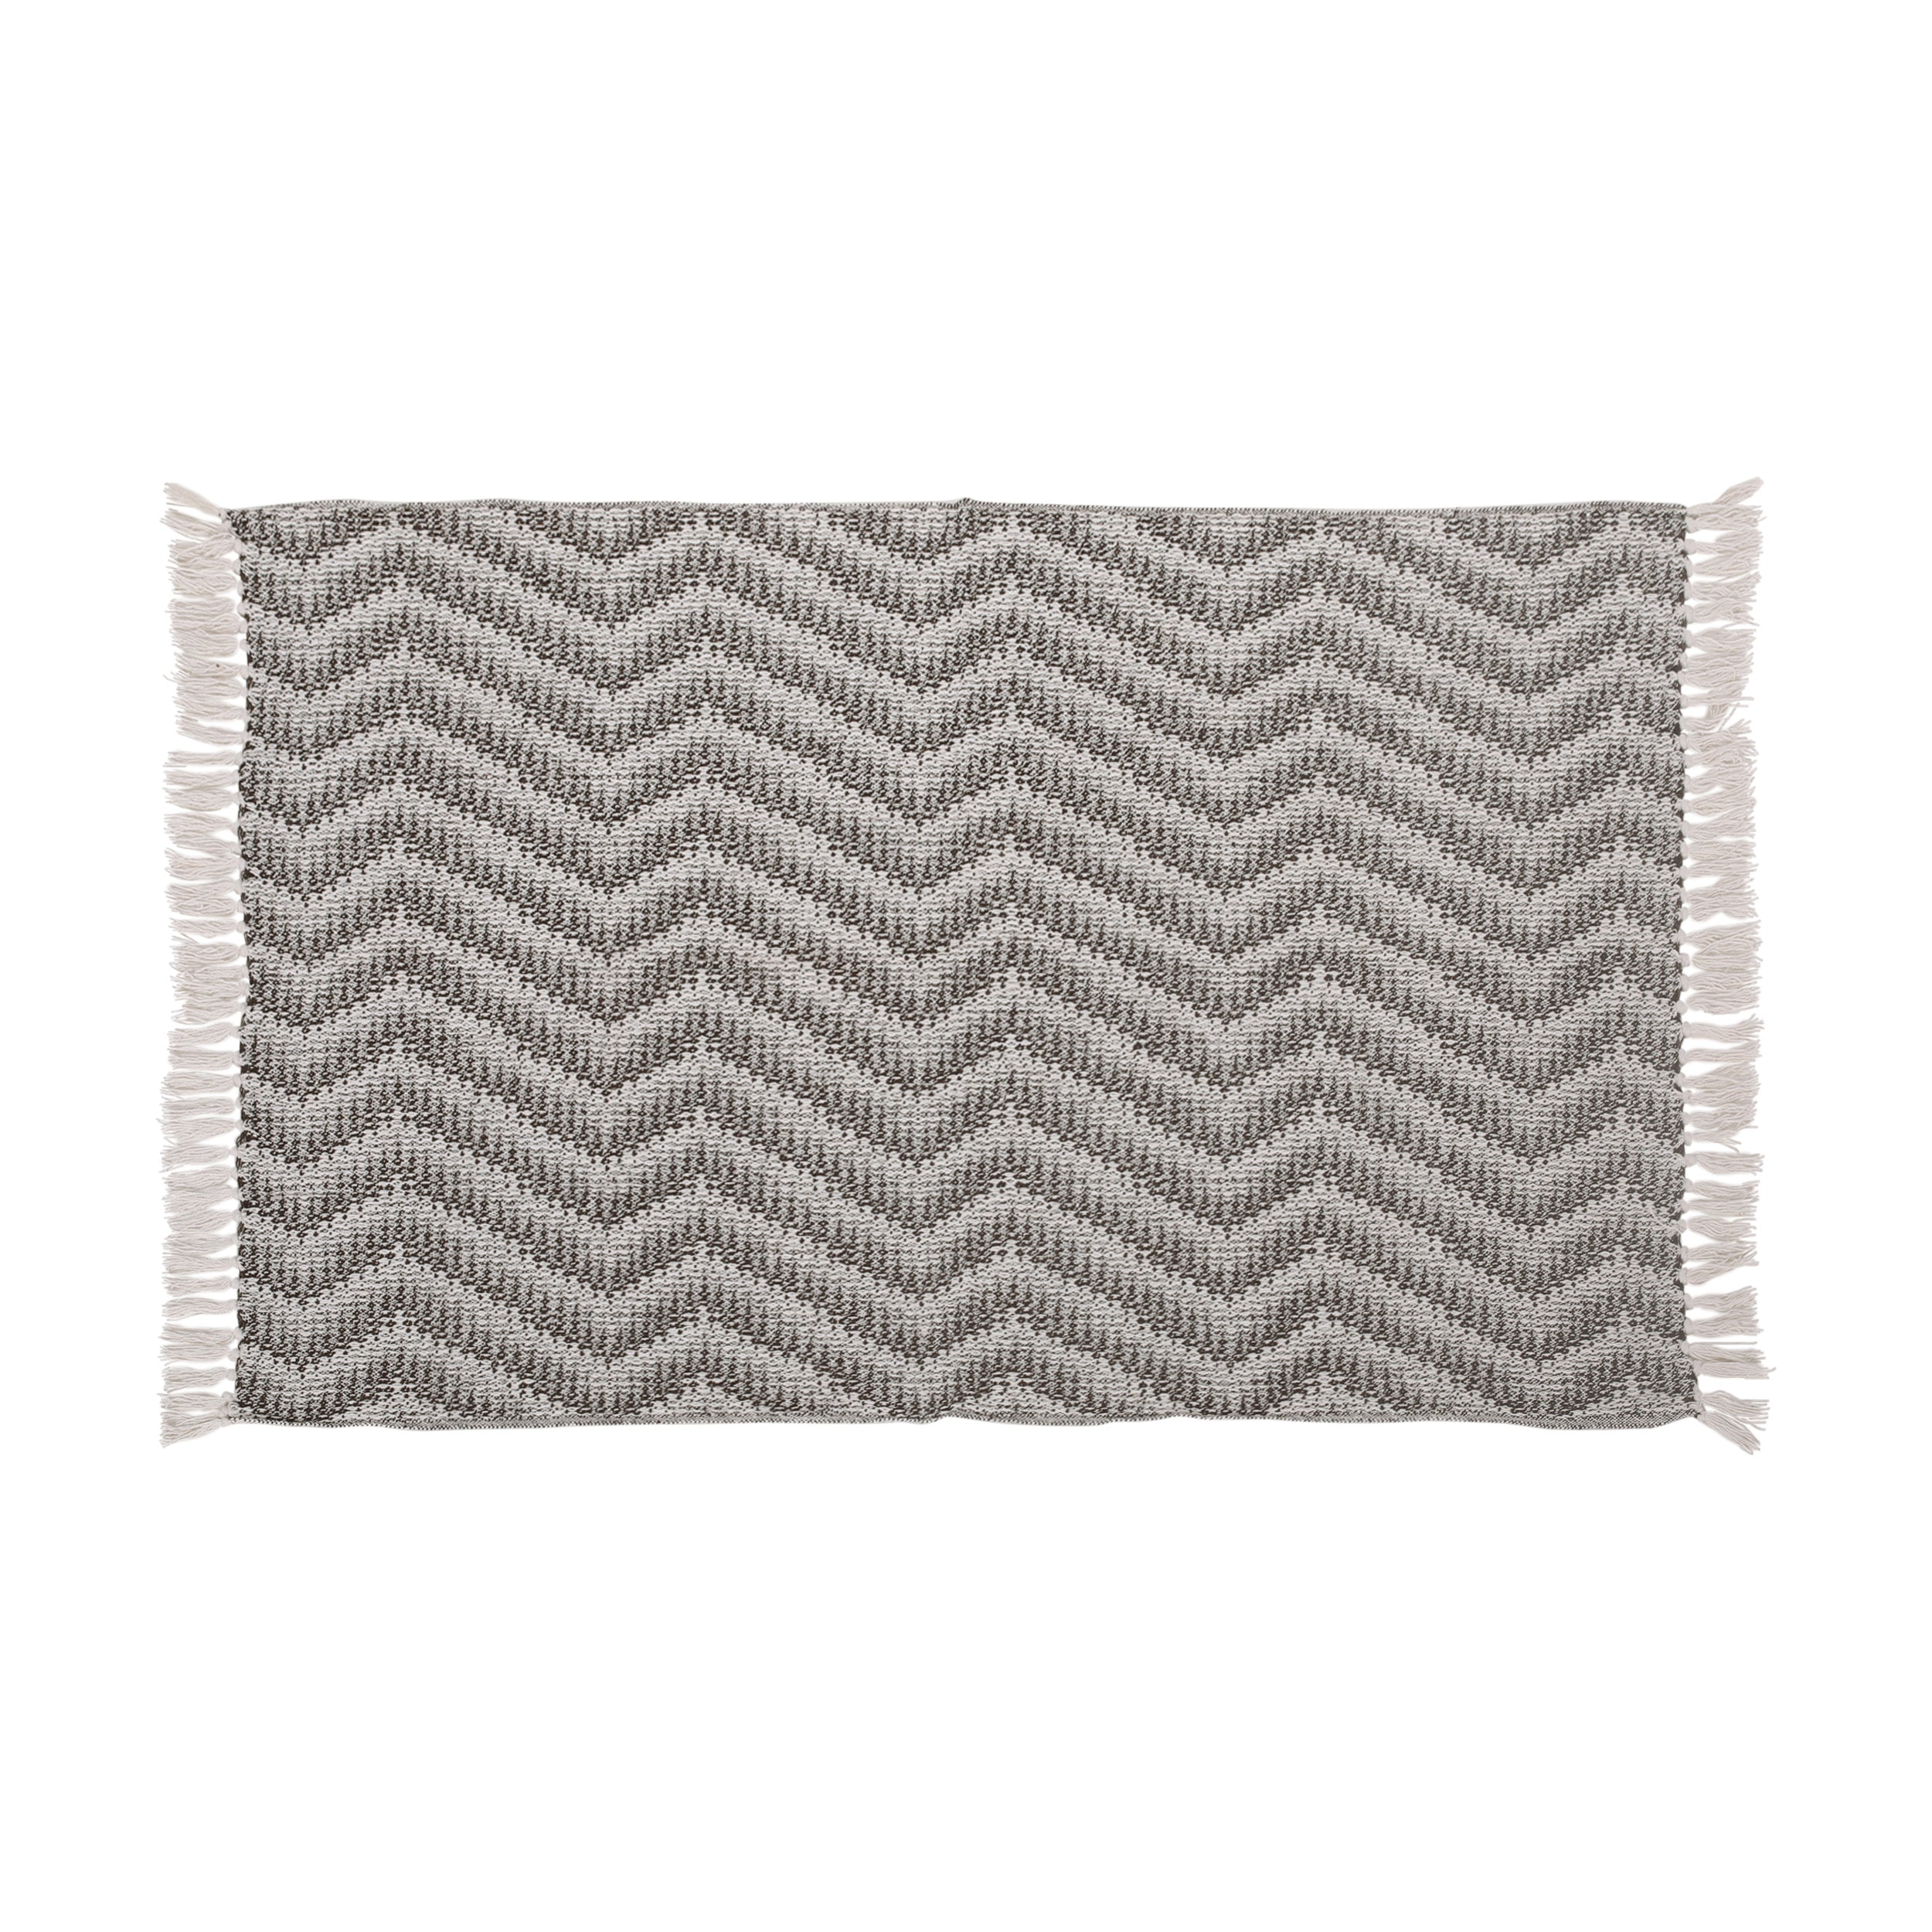 Anise Hand Loomed Boho Throw Blanket Default Title